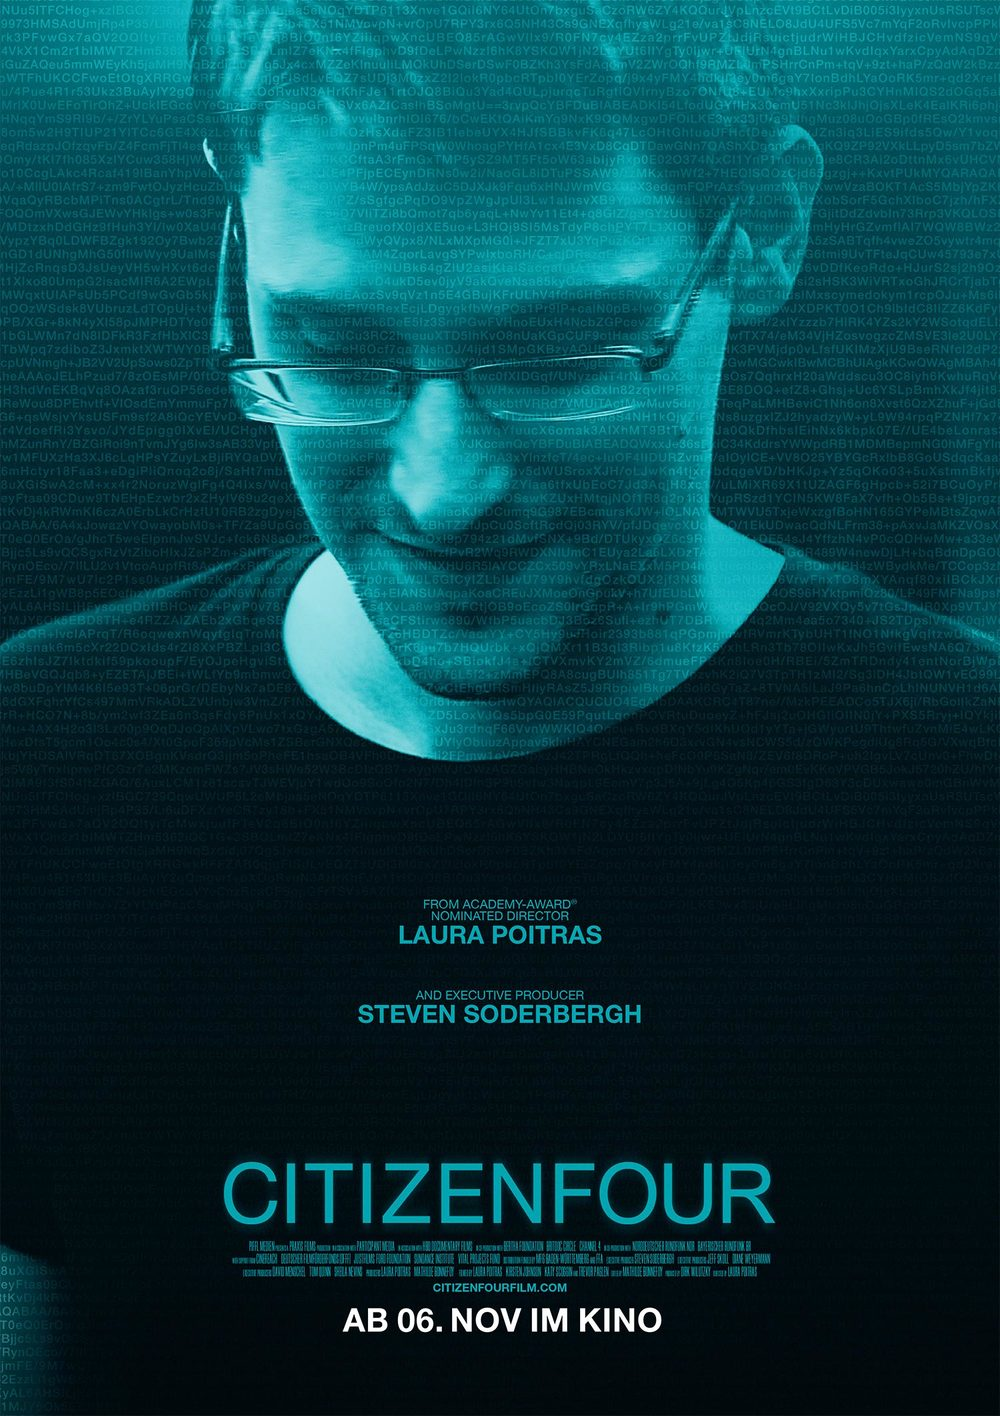 "Piffl Medien<a href=""/citizenfour"">→</a><strong>Adaption</strong>"